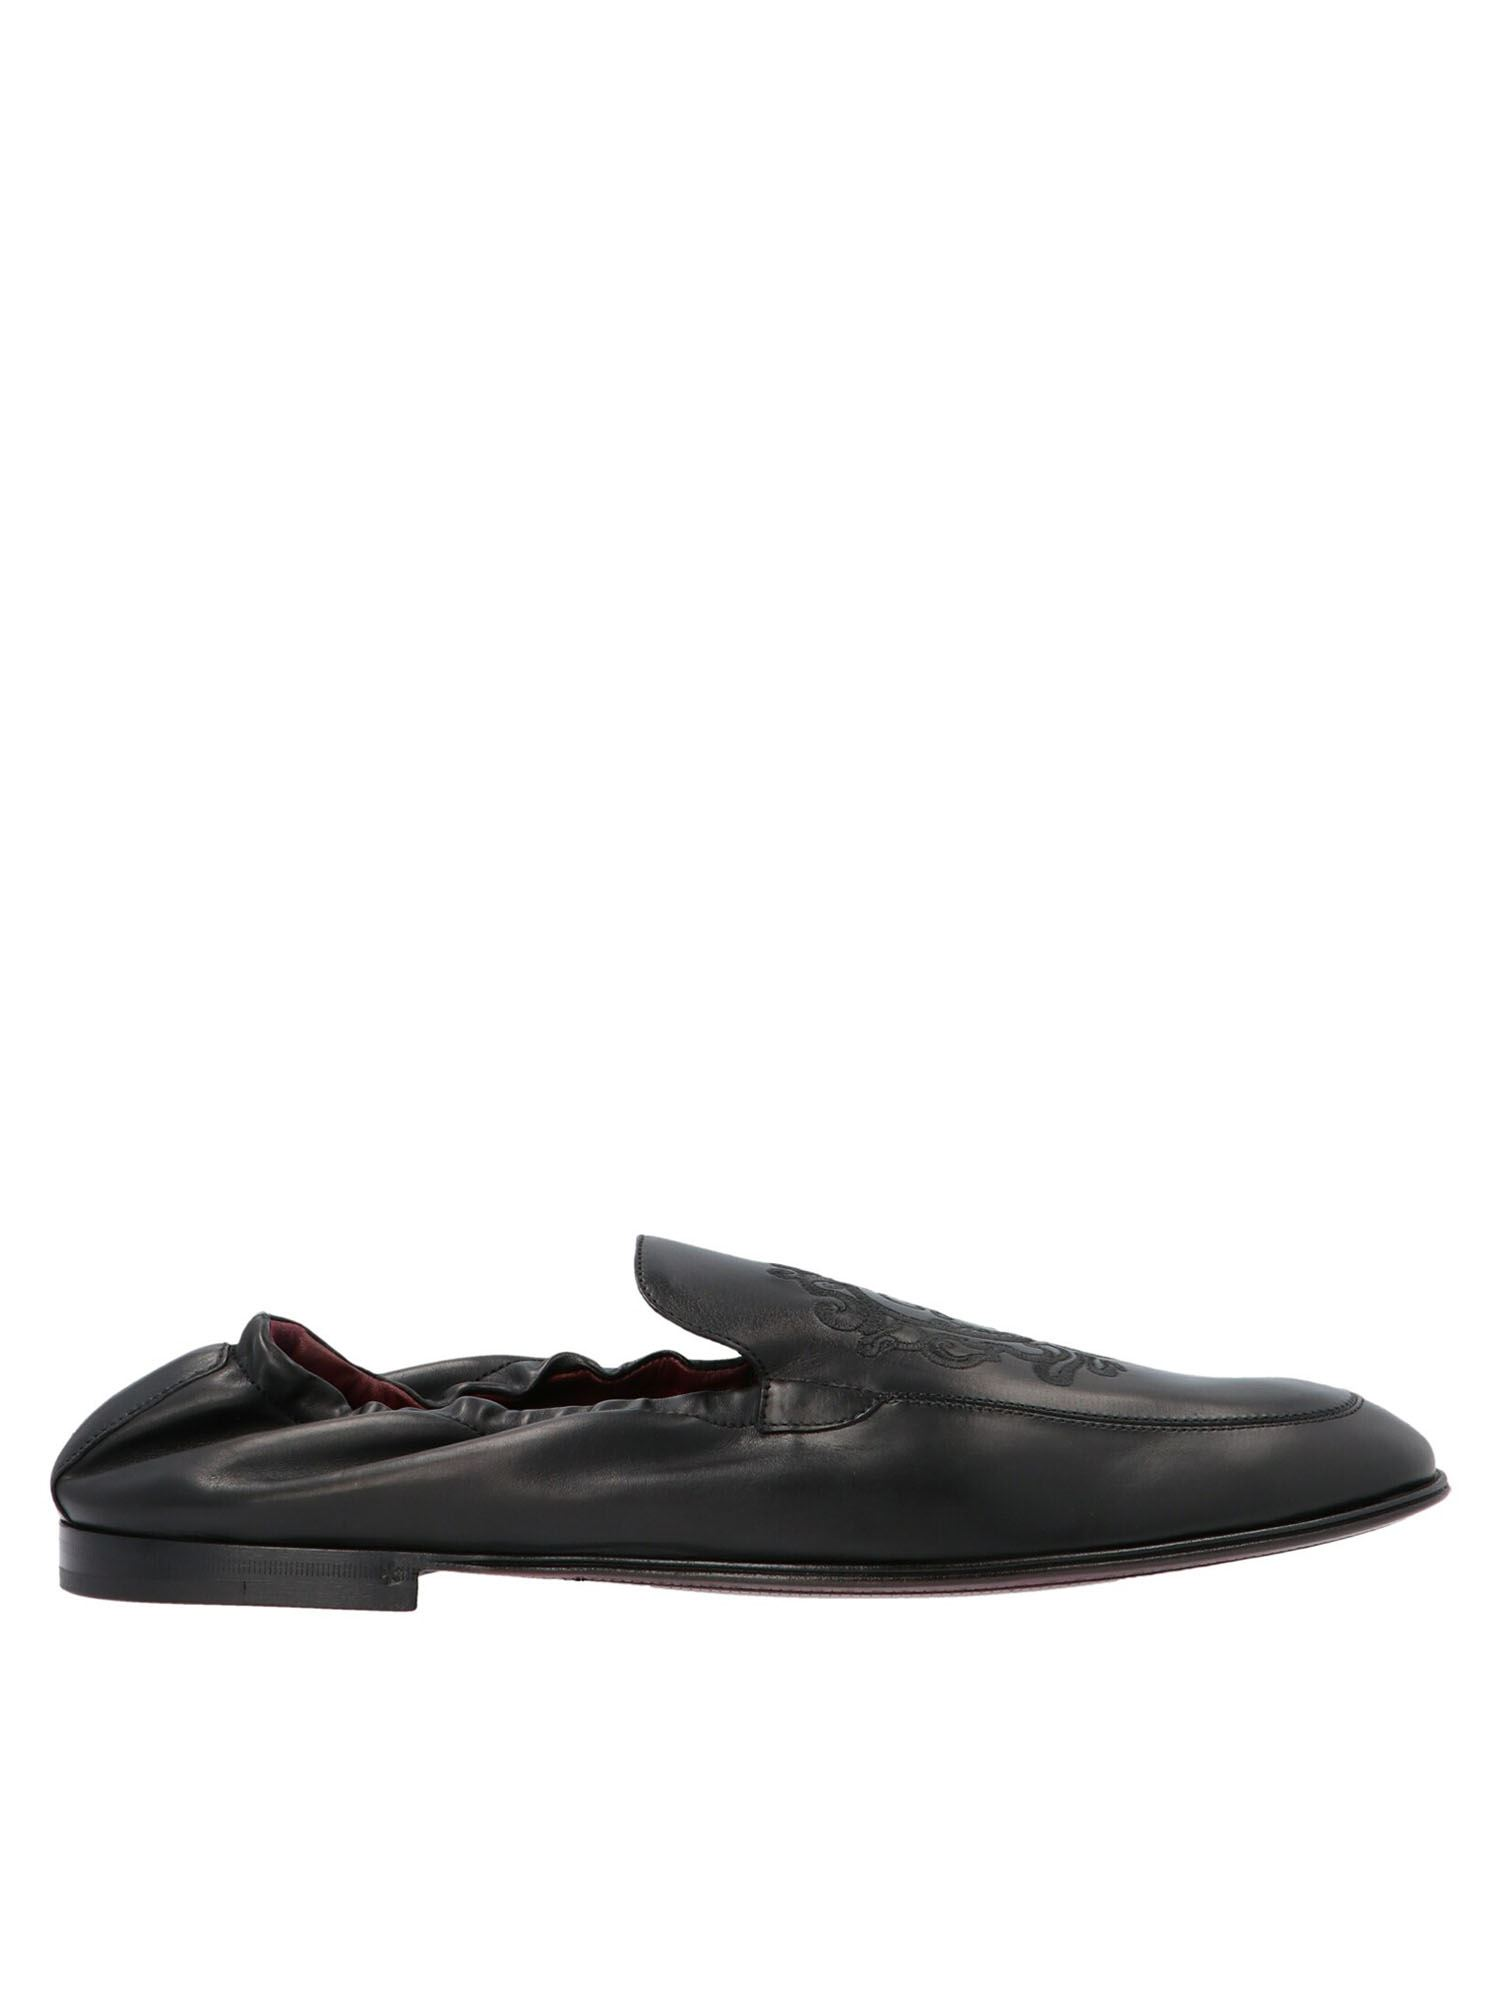 Dolce & Gabbana Leathers BLAZON EMBROIDERY LOAFERS IN BLACK